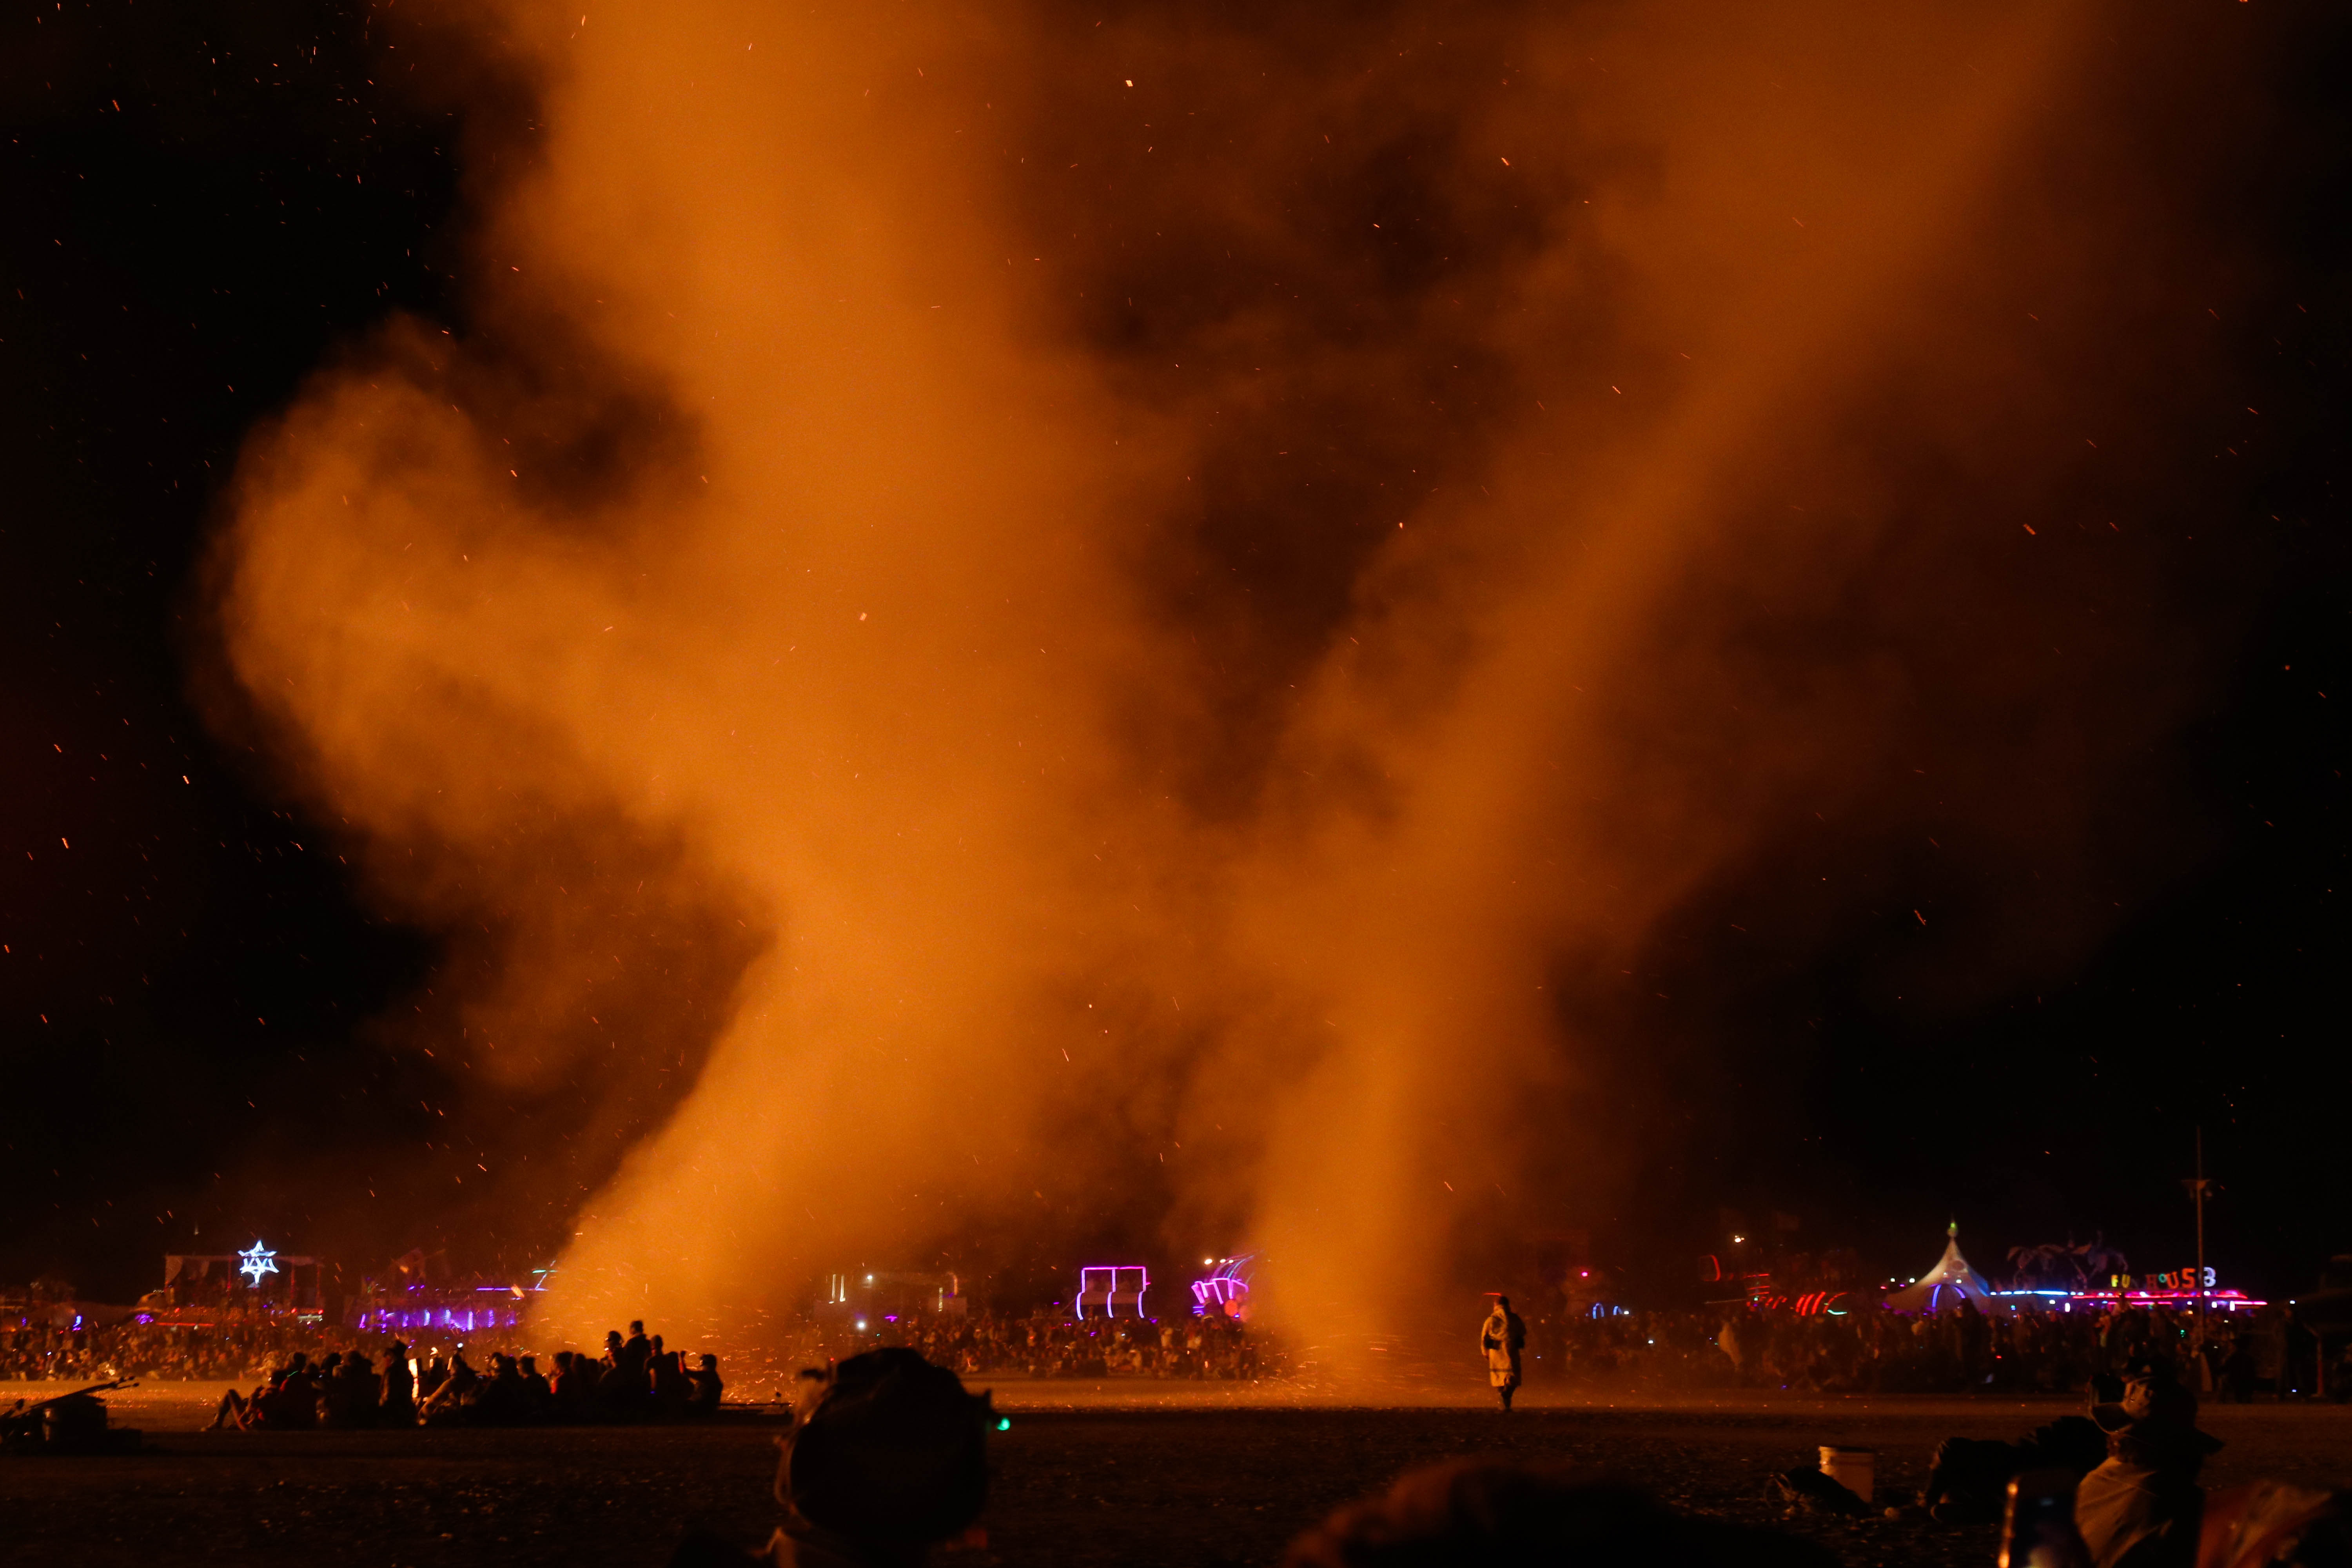 Dust Devil at the Burning Man burn 2